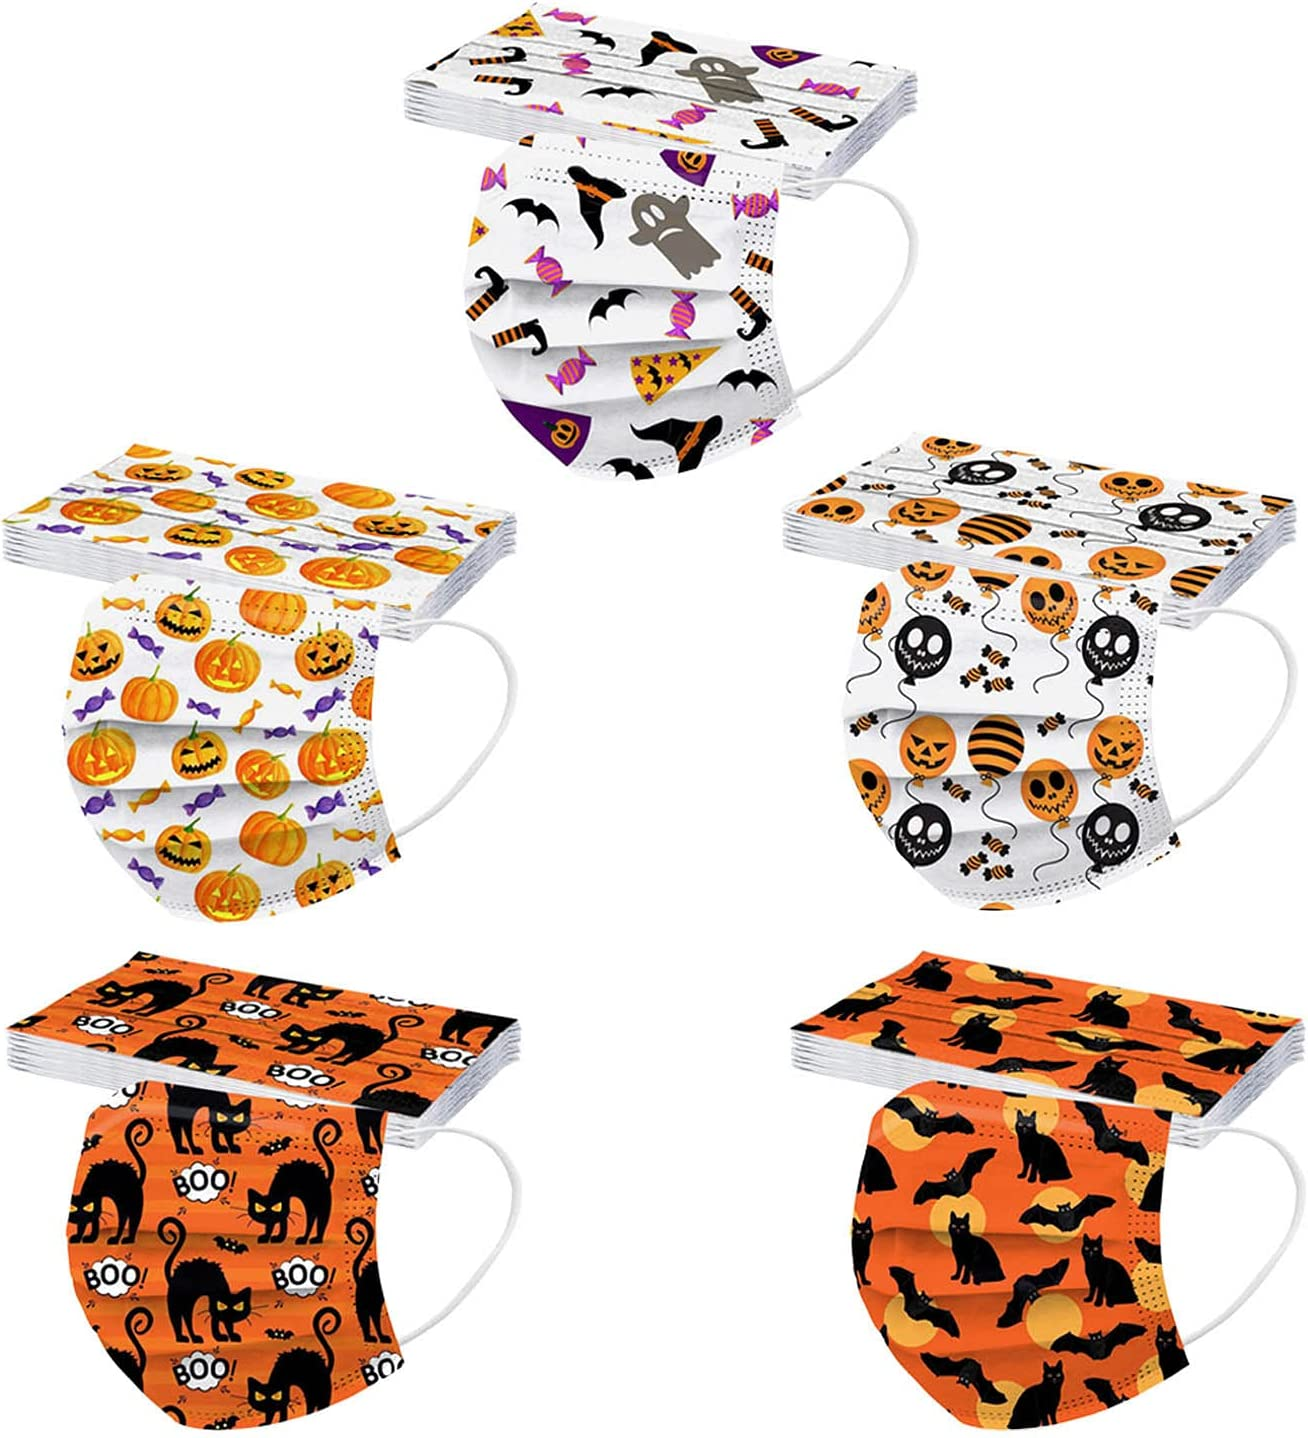 50 Pcs 5% OFF Kids Disposable Face_Masks Printed Halloween SEAL limited product Facemasks f